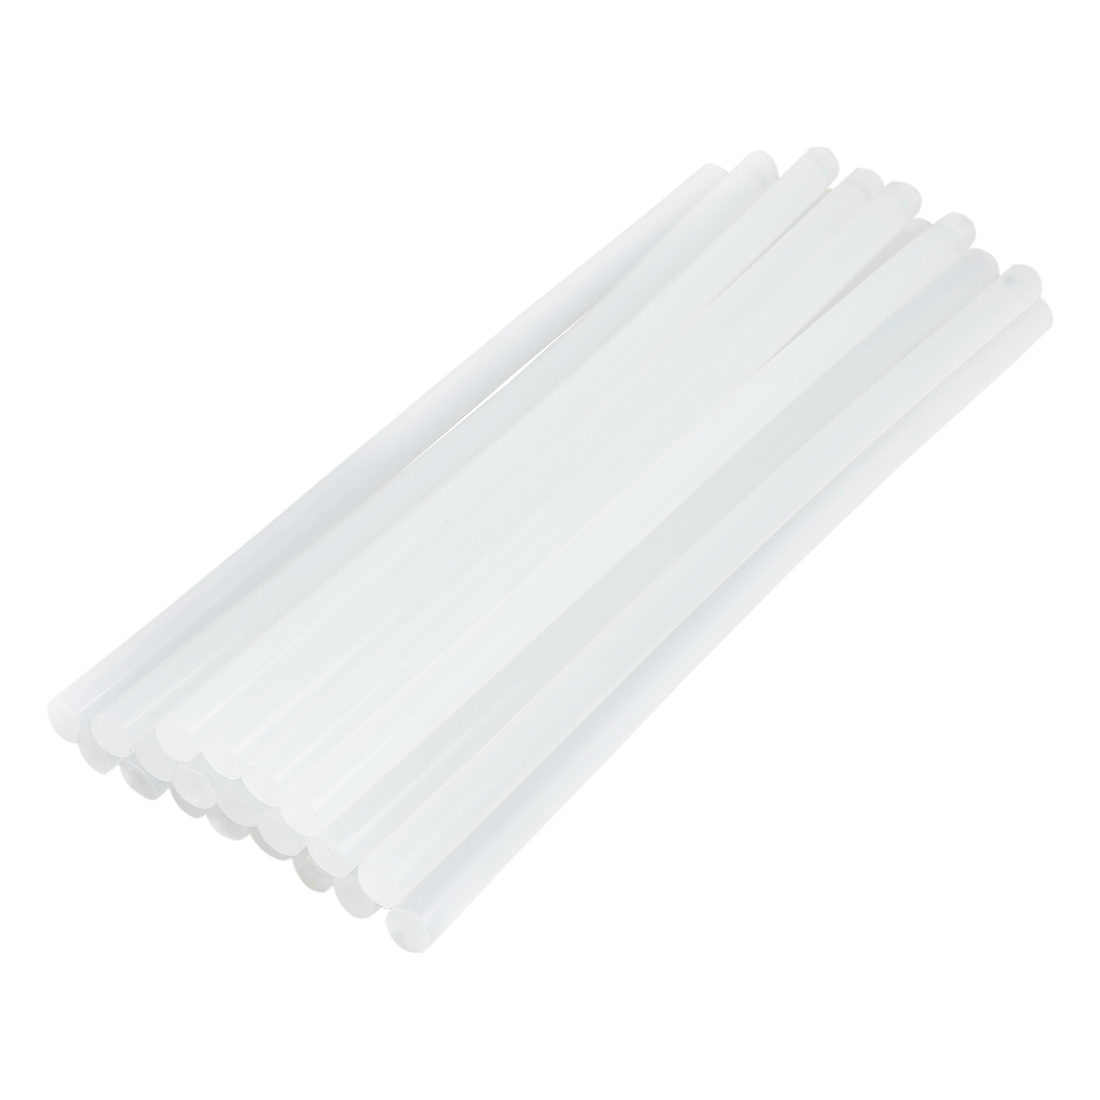 20 Pcs 11mm x 270mm Clear Paintless Dent Repair Hot Melt Glue Sticks for Car